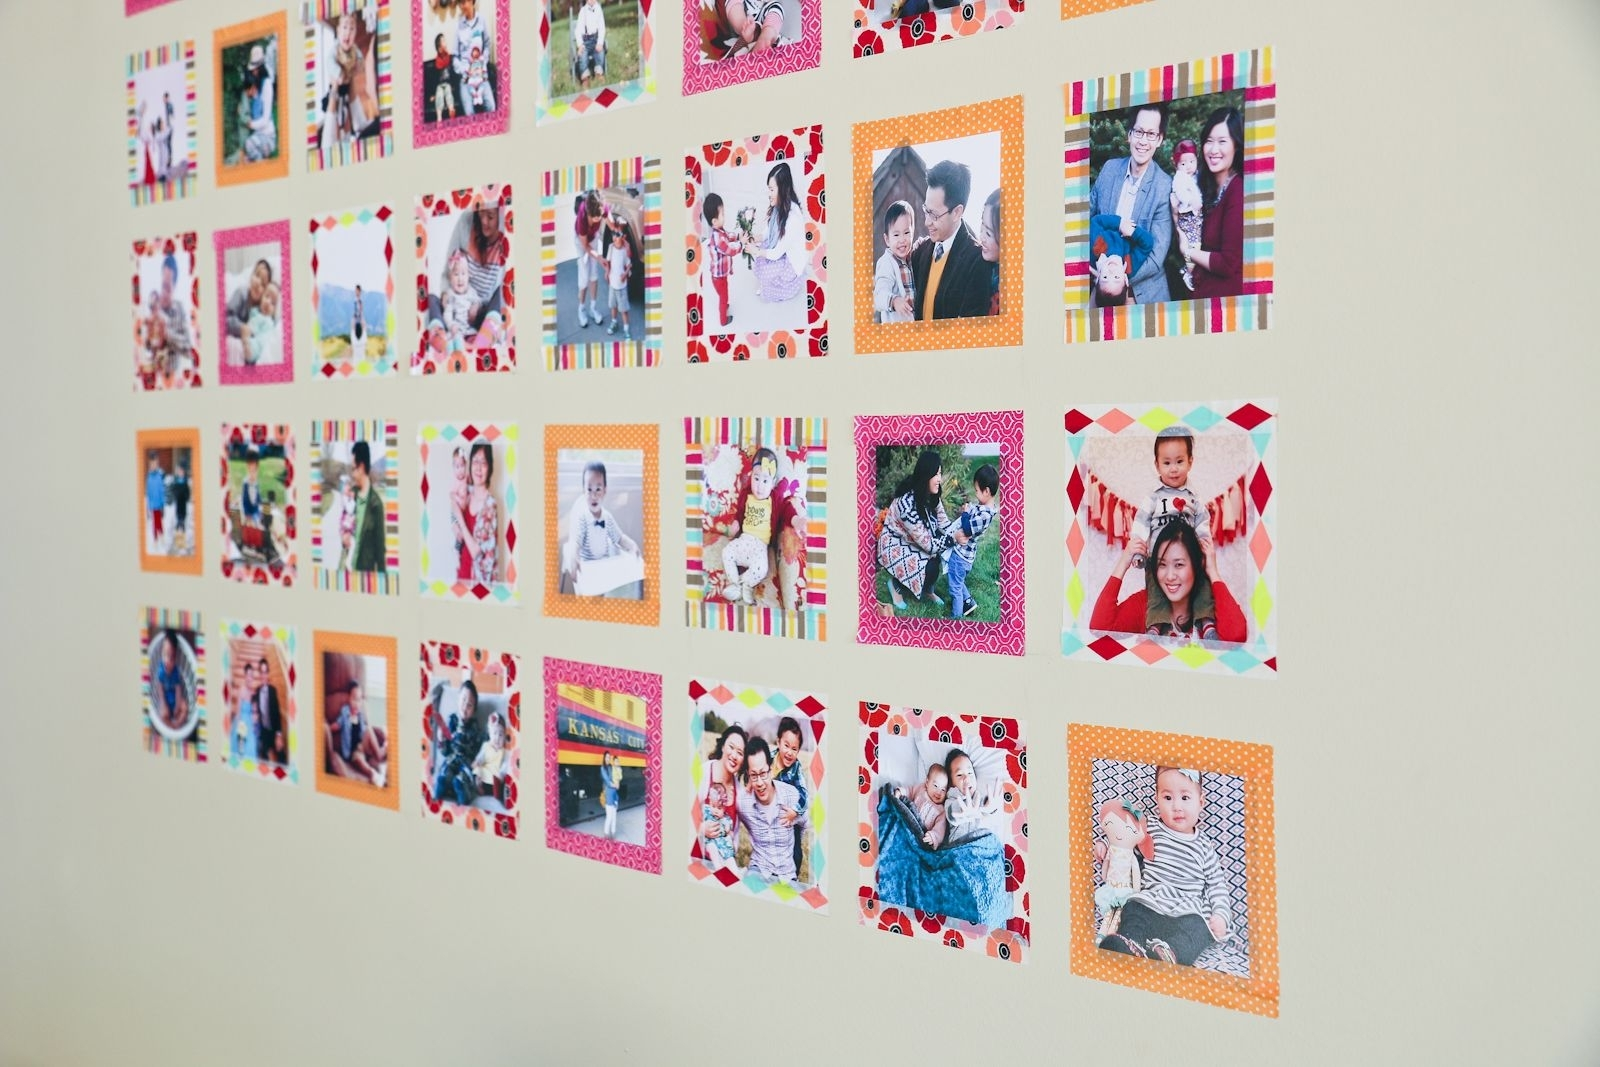 Instagram Wall Art With Washi Tape | Instagram Wall And Walls Within Most Popular Instagram Wall Art (View 13 of 20)